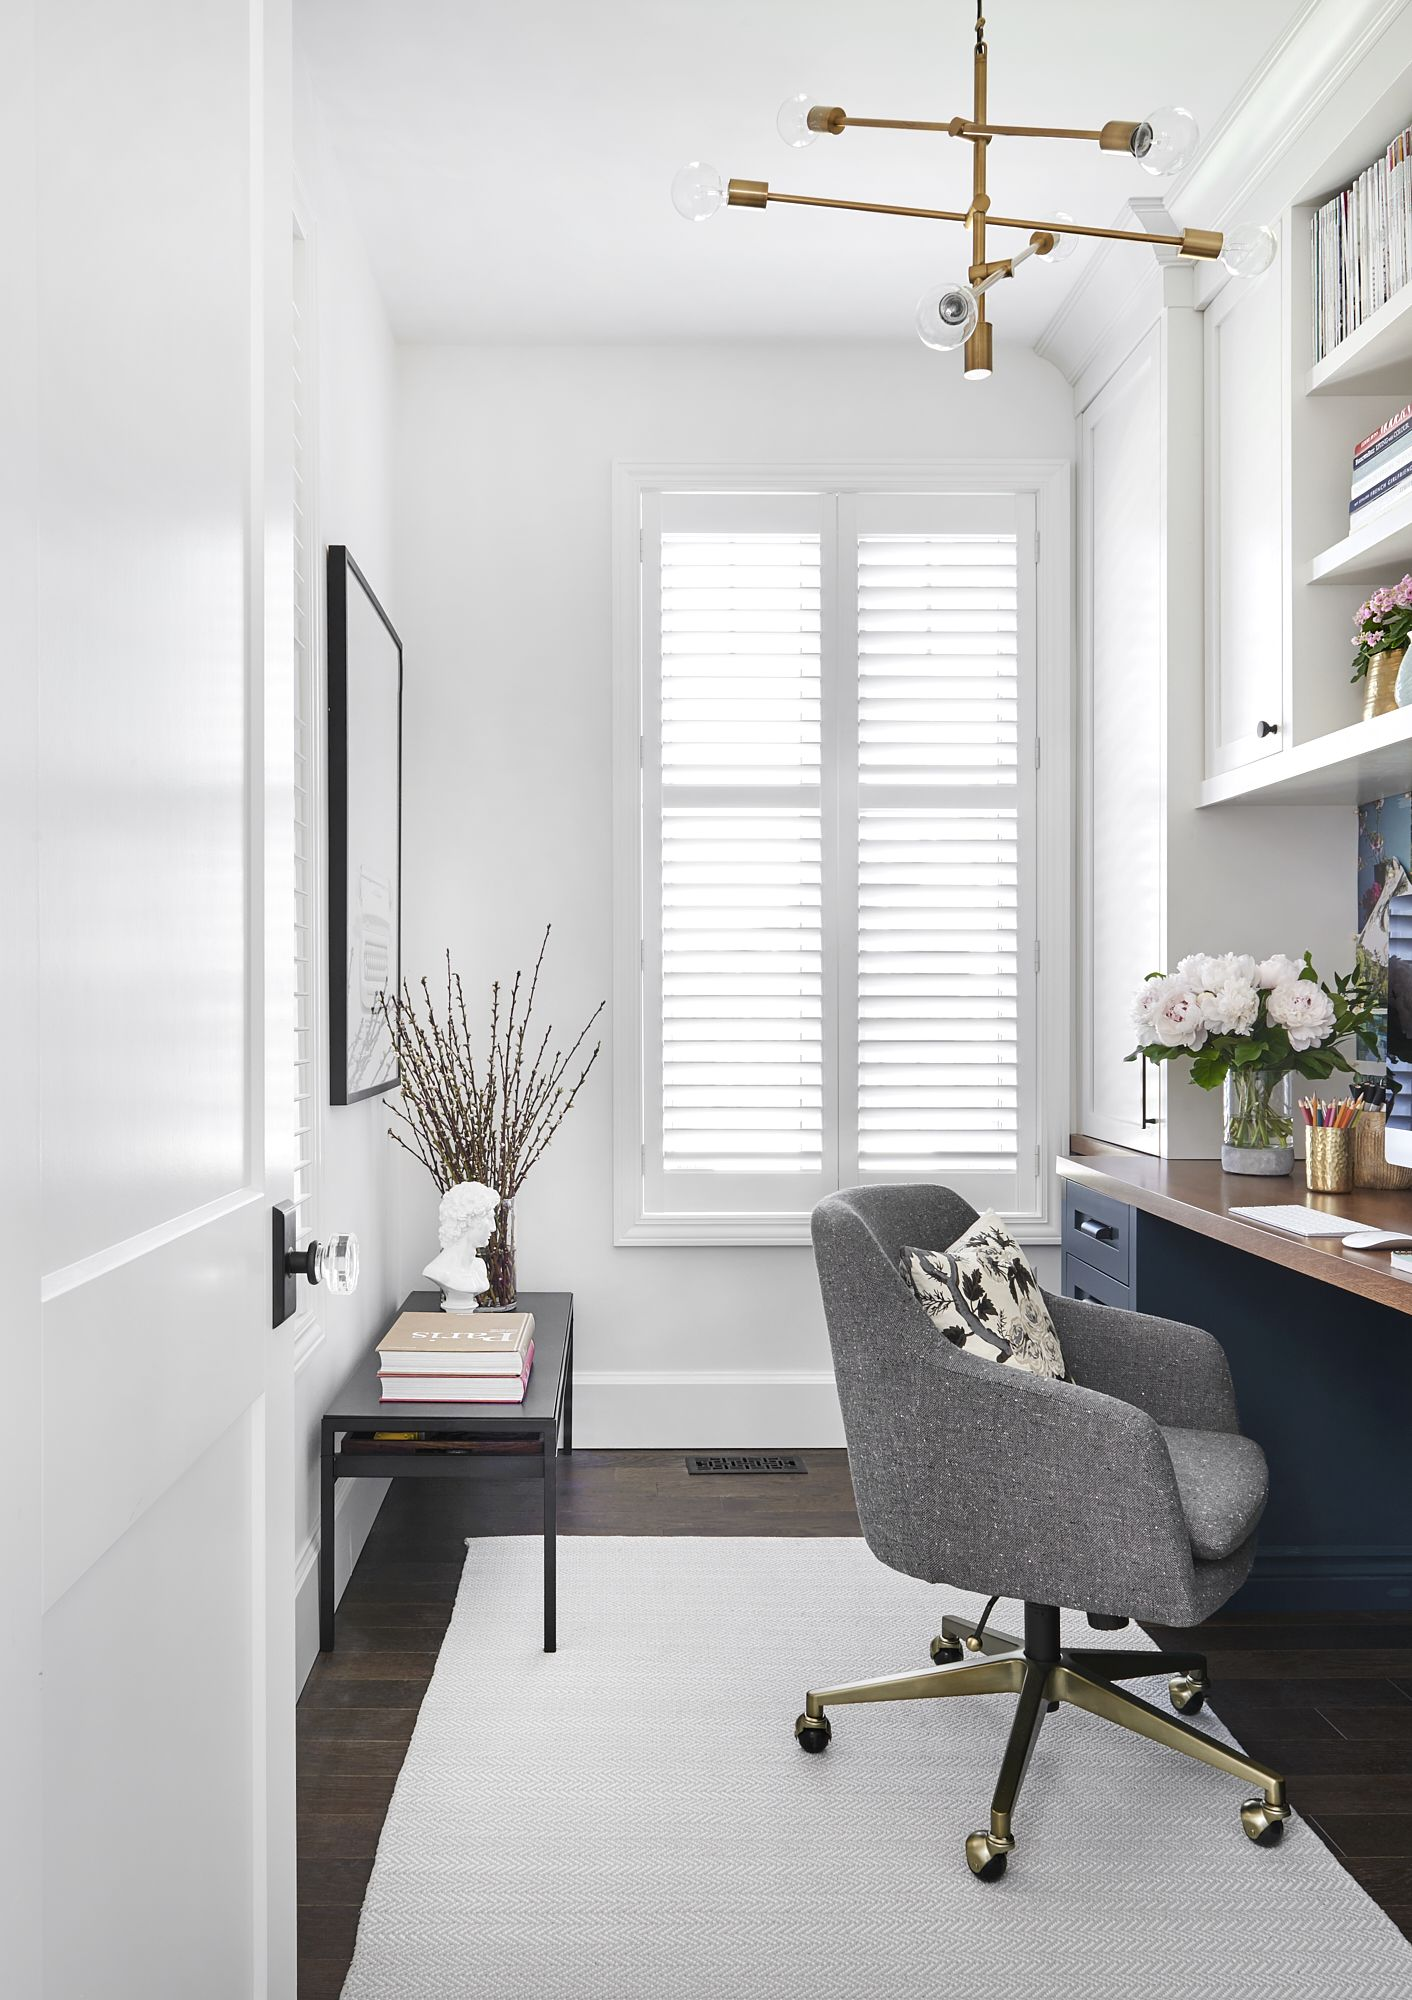 Home Office Room Design: Vanessa Francis Design